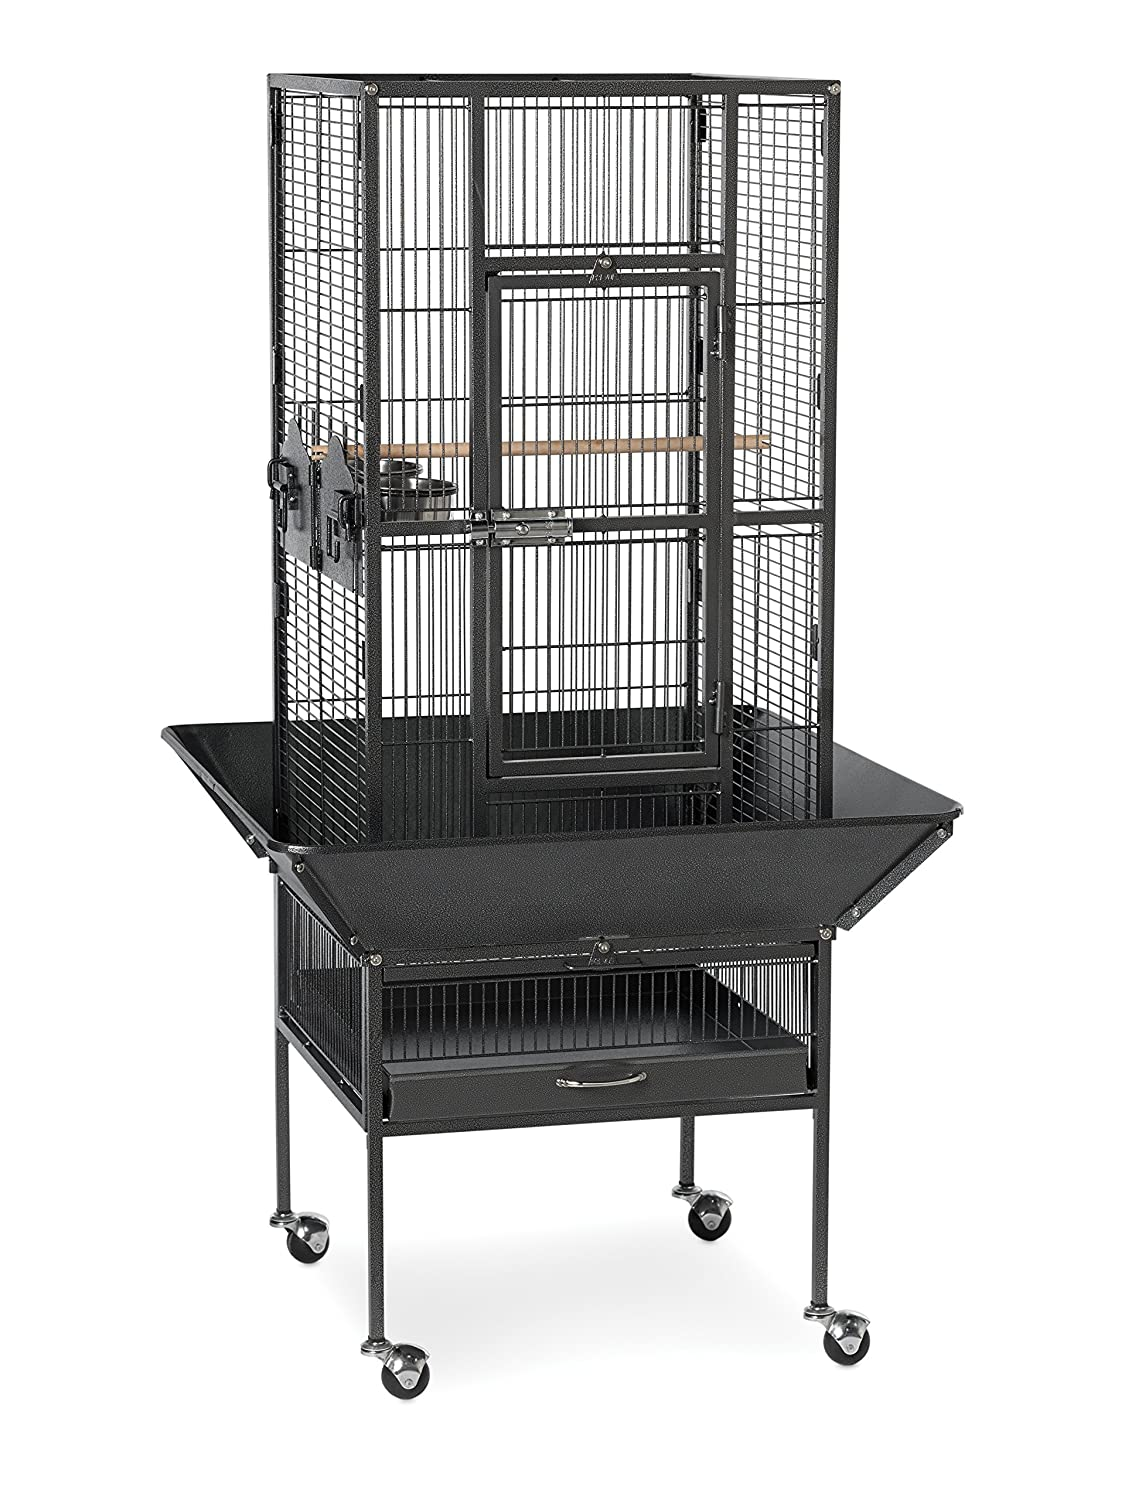 Prevue Park Plaza Bird Cage Coco Brown Prevue Pet Products 3351COCO